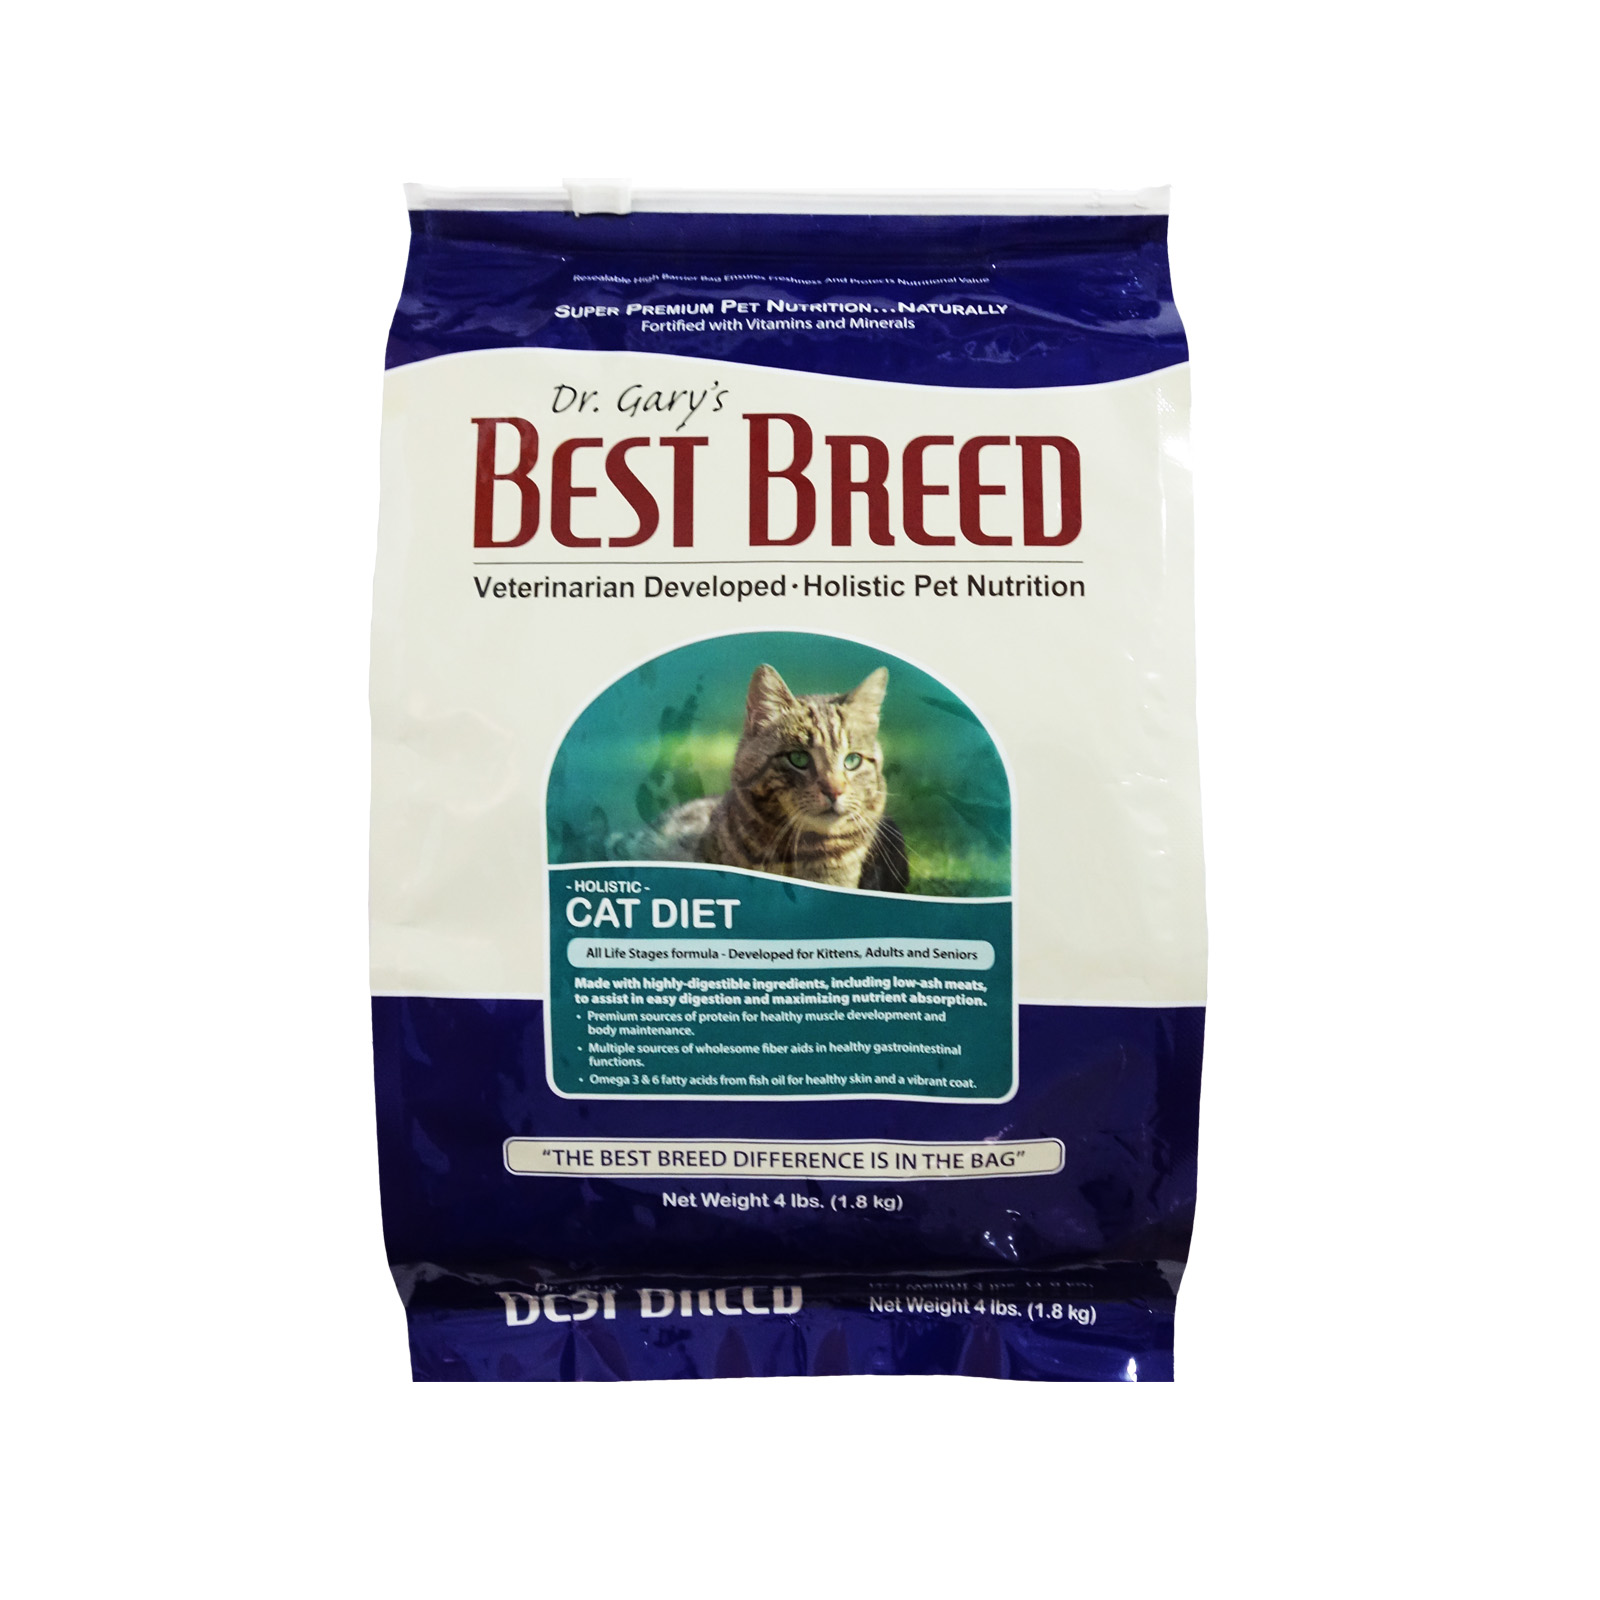 Dr. Gary's Best Breed Holistic All Life Stages Chicken and Herring Cat Diet Dry Food 1.8kg